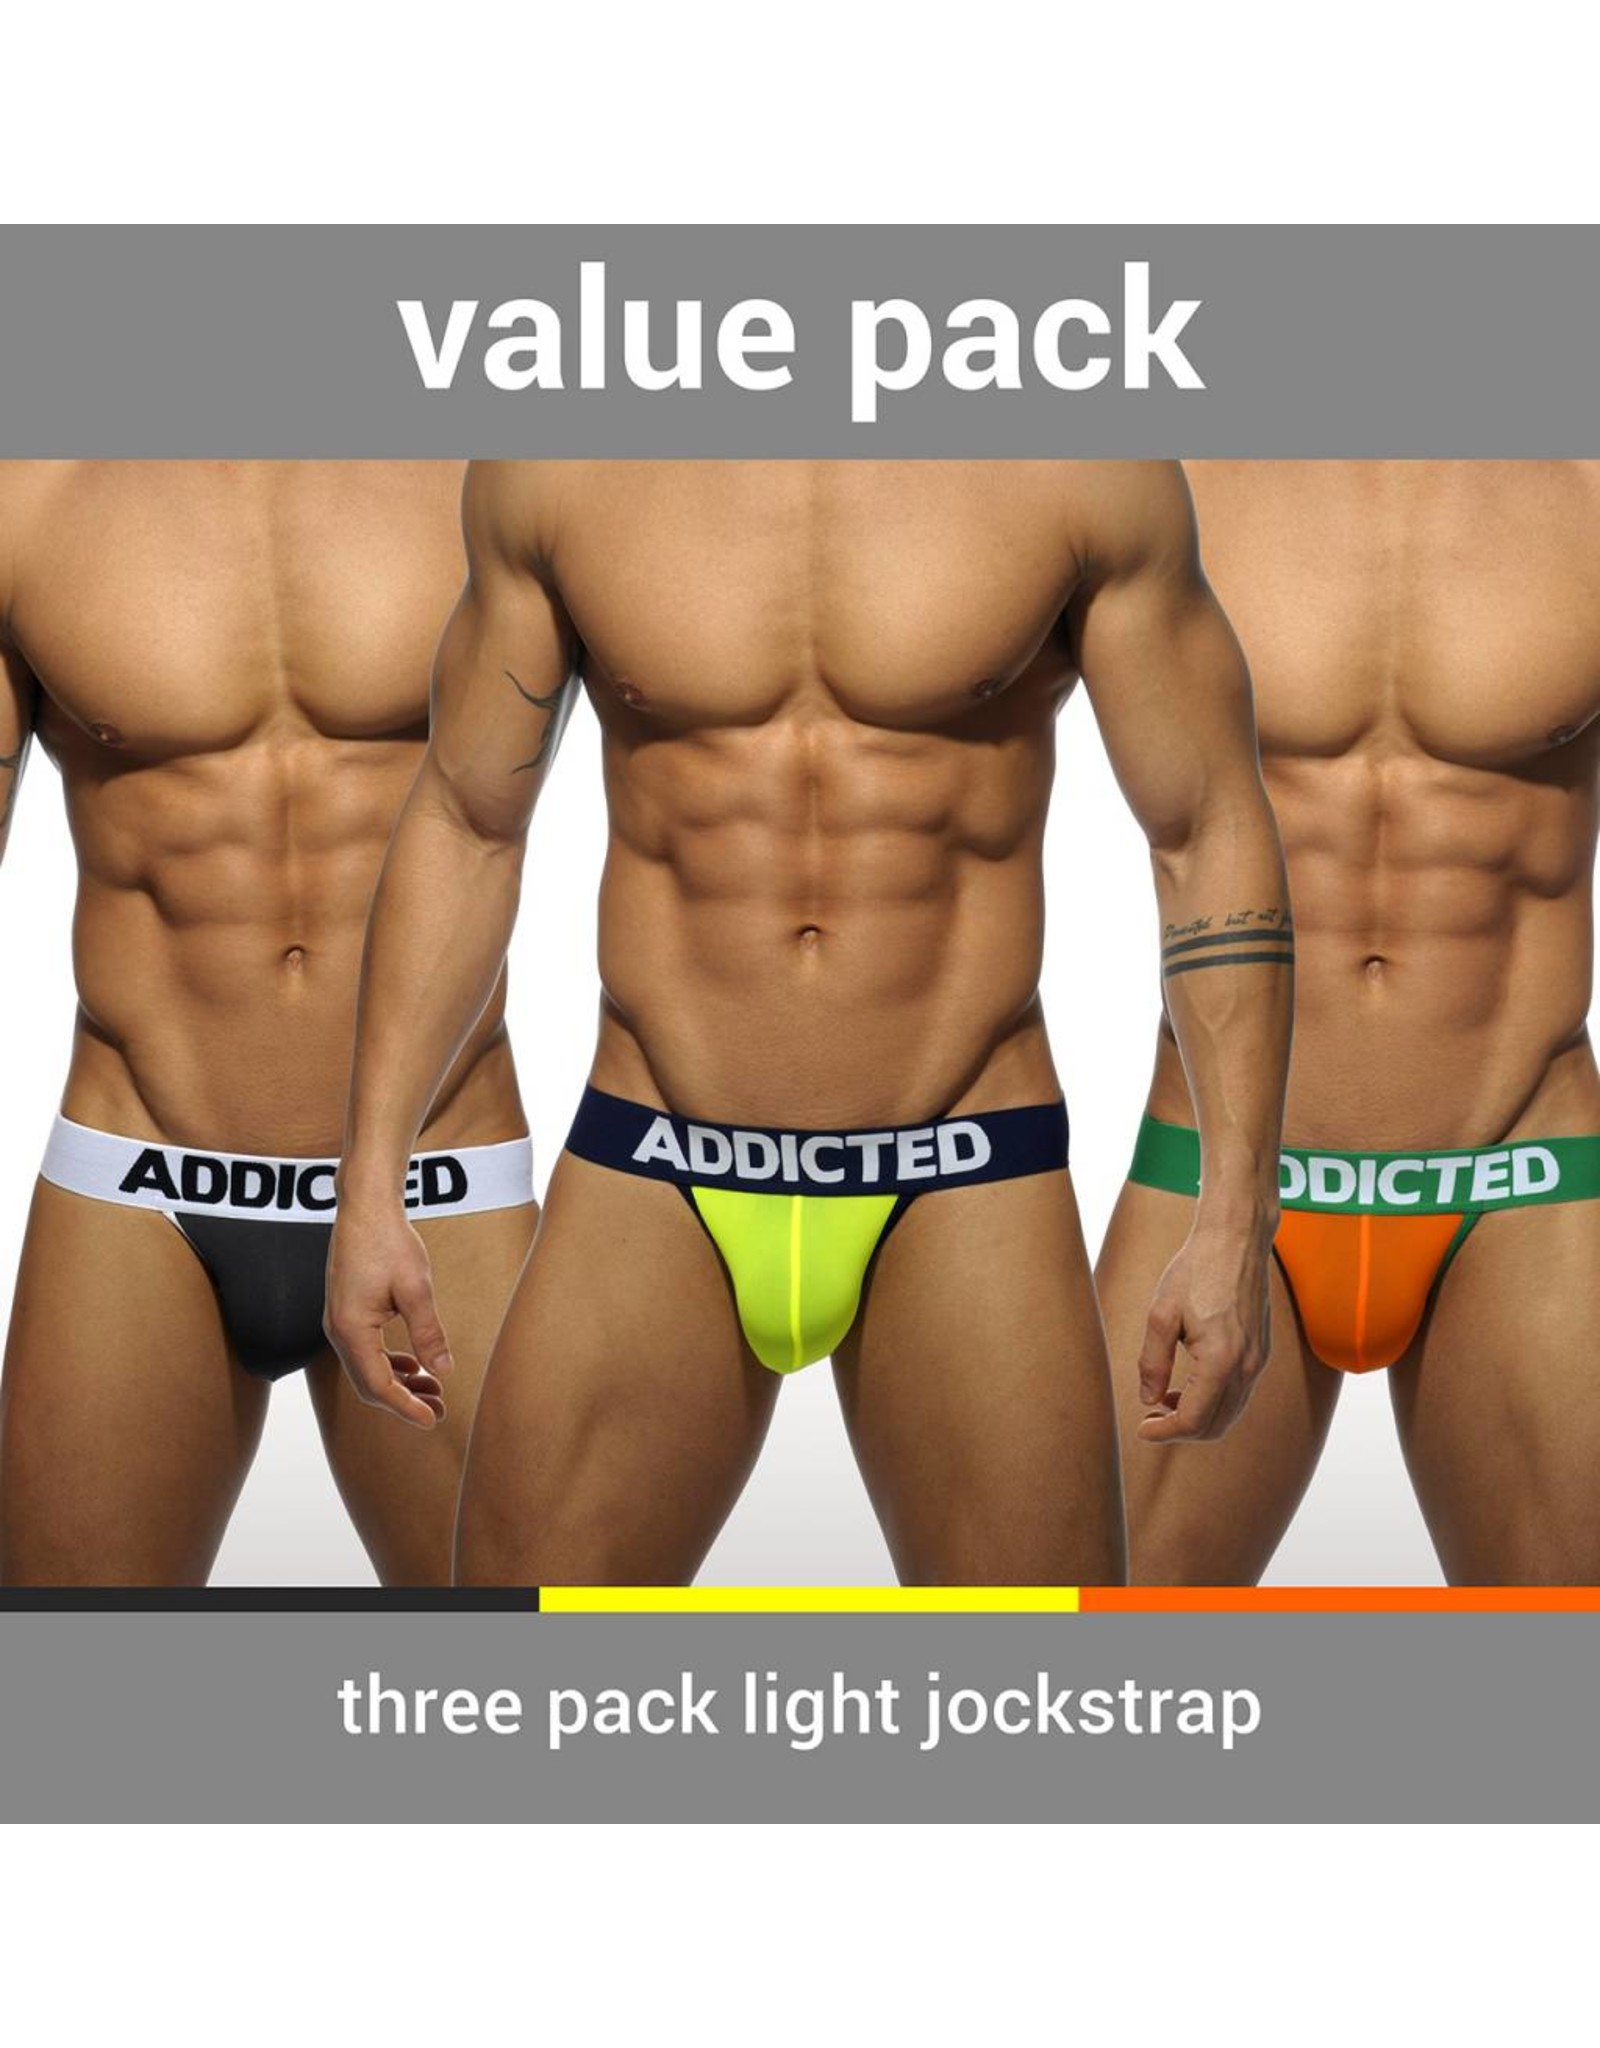 Addicted ADDICTED Three Pack Light Jockstrap